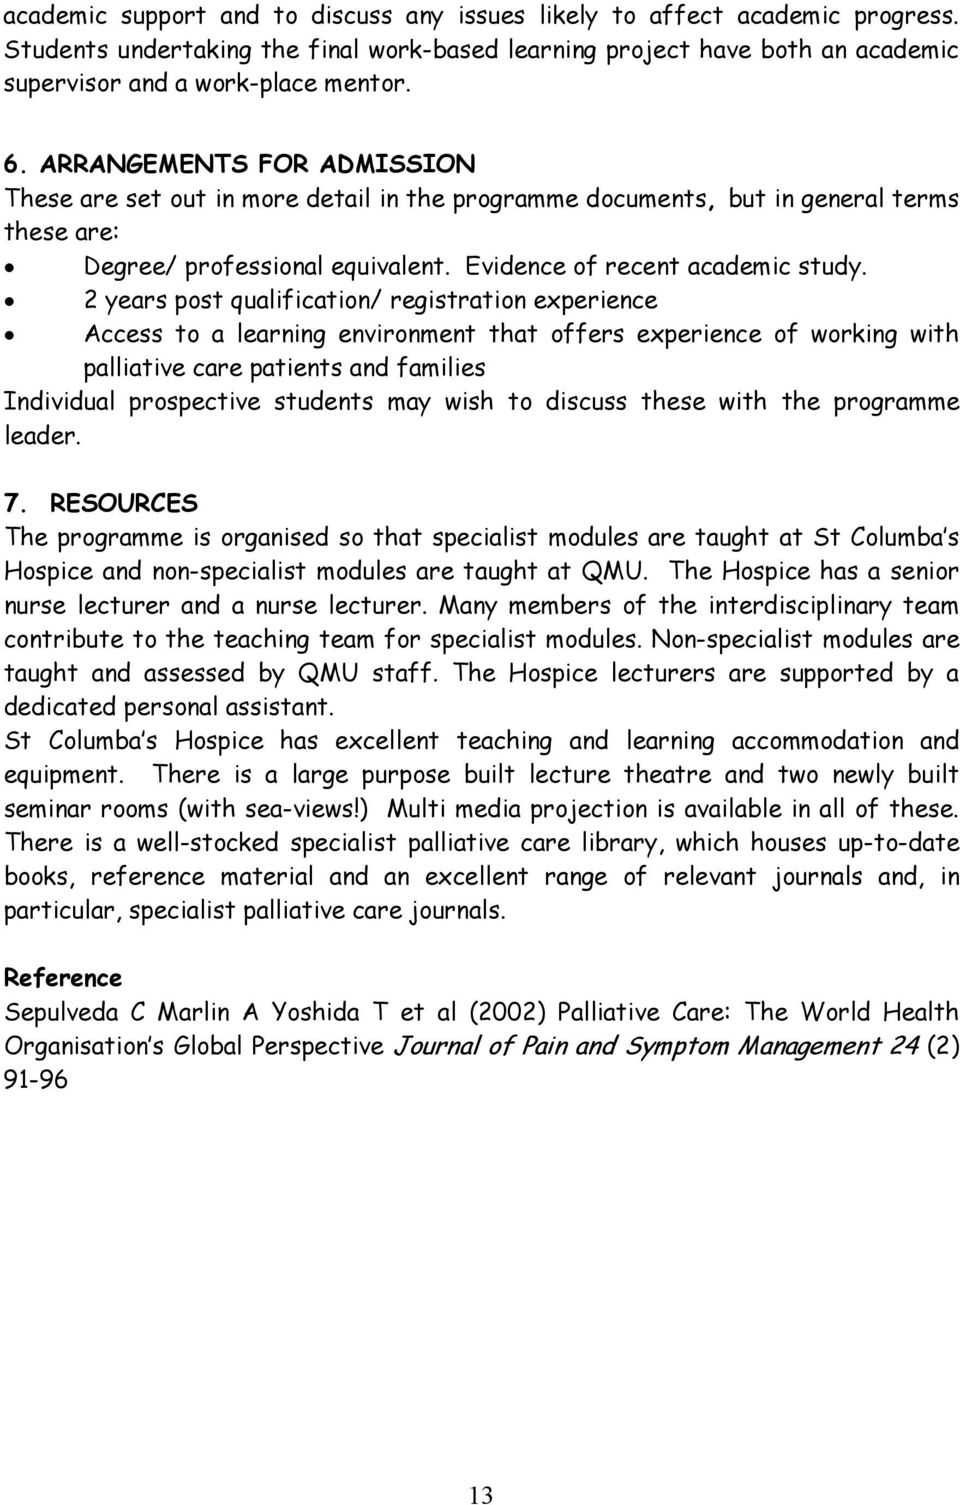 2 years post qualification/ registration experience Access to a learning environment that offers experience of working with palliative care patients and families Individual prospective students may